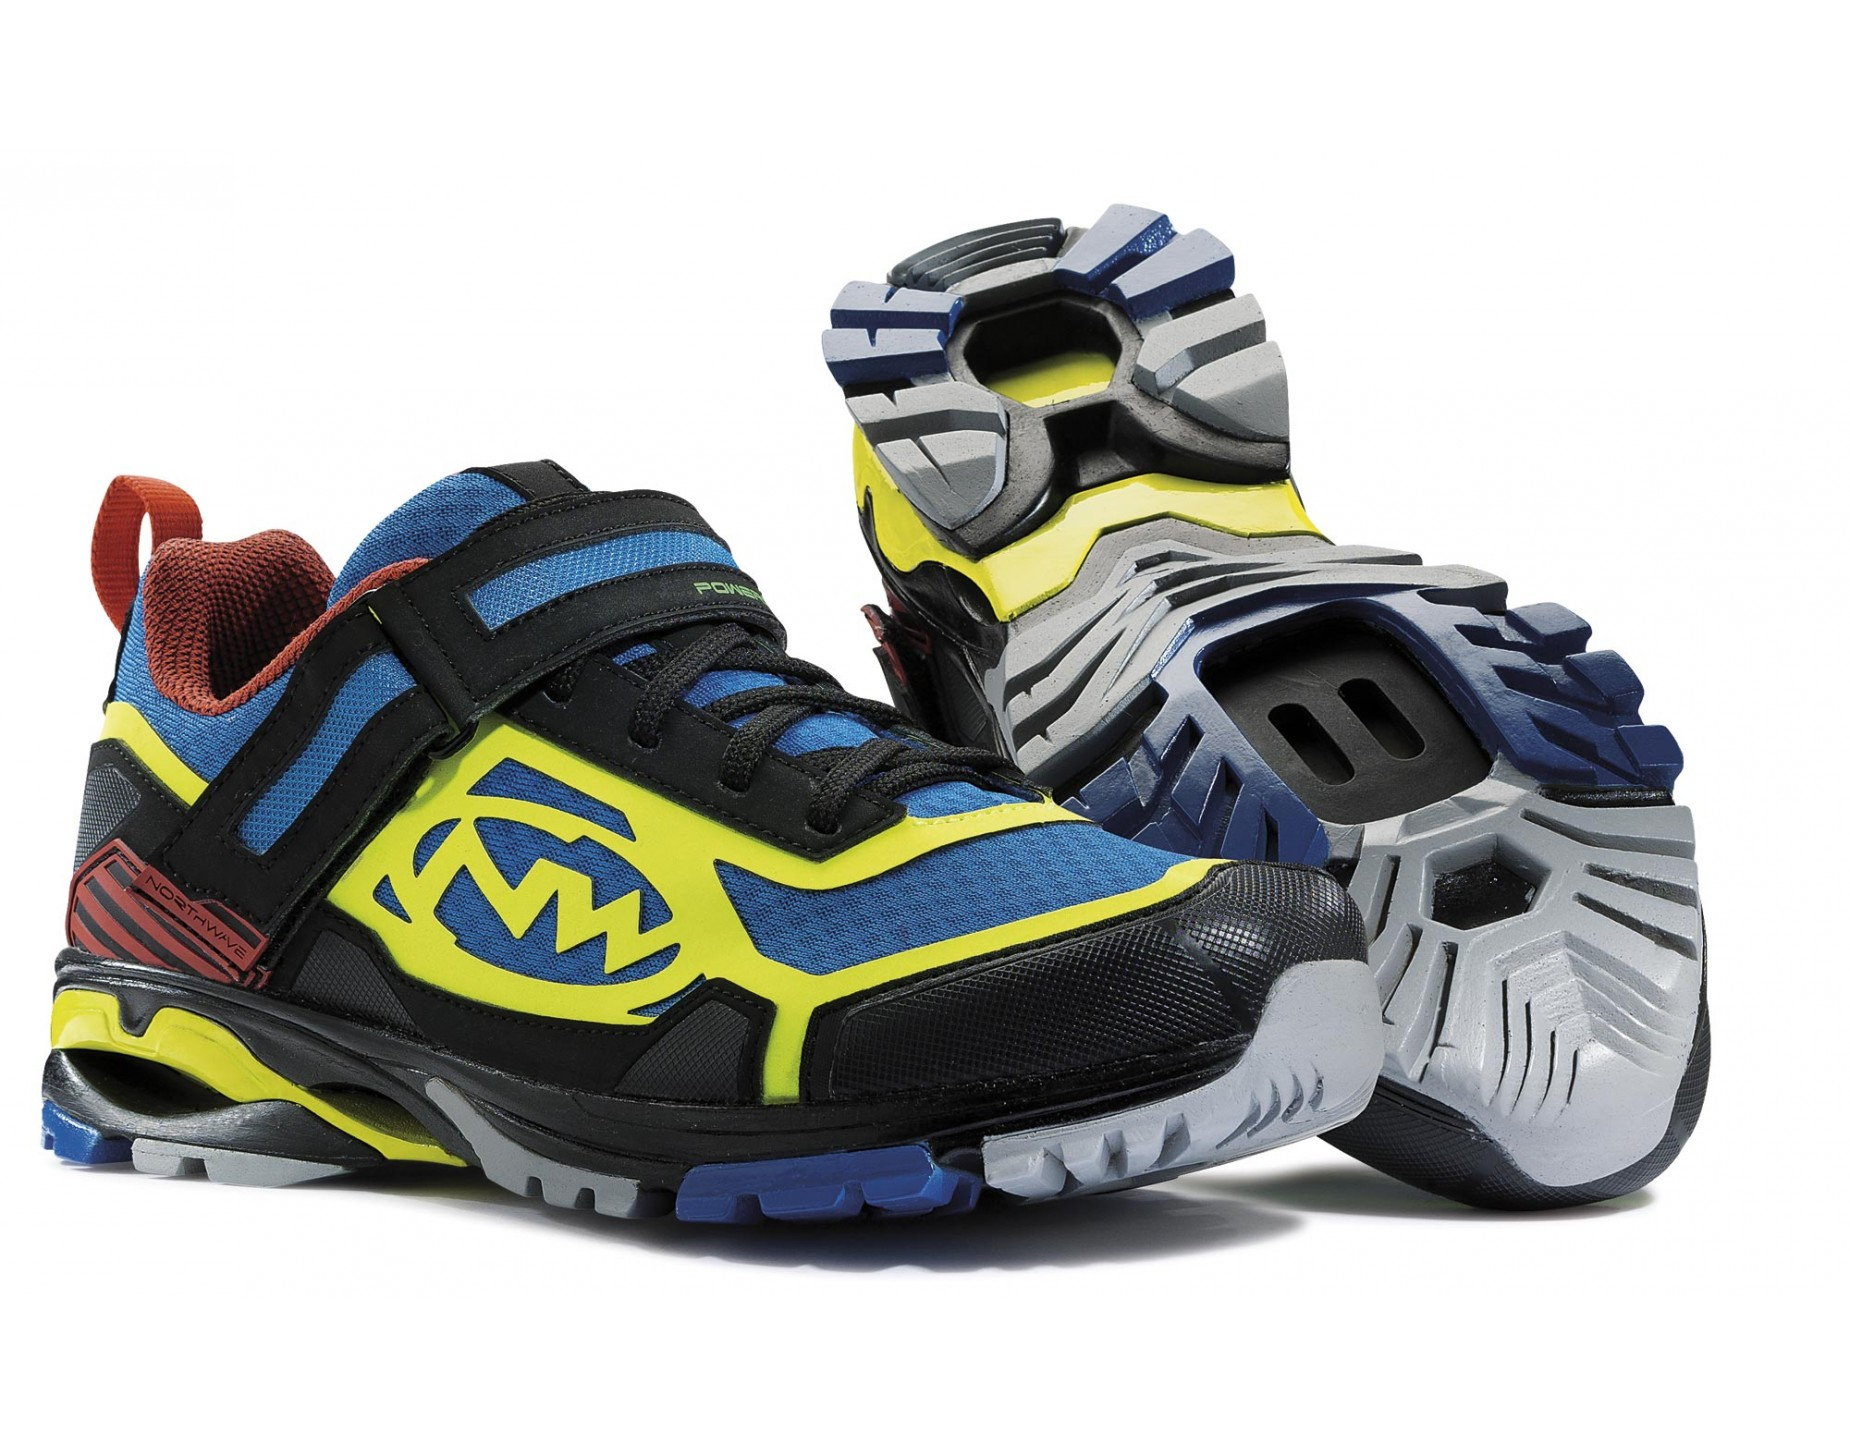 Northwave's new Rebel SBS shoes offer most of the benefits of its higher-end Aerlite